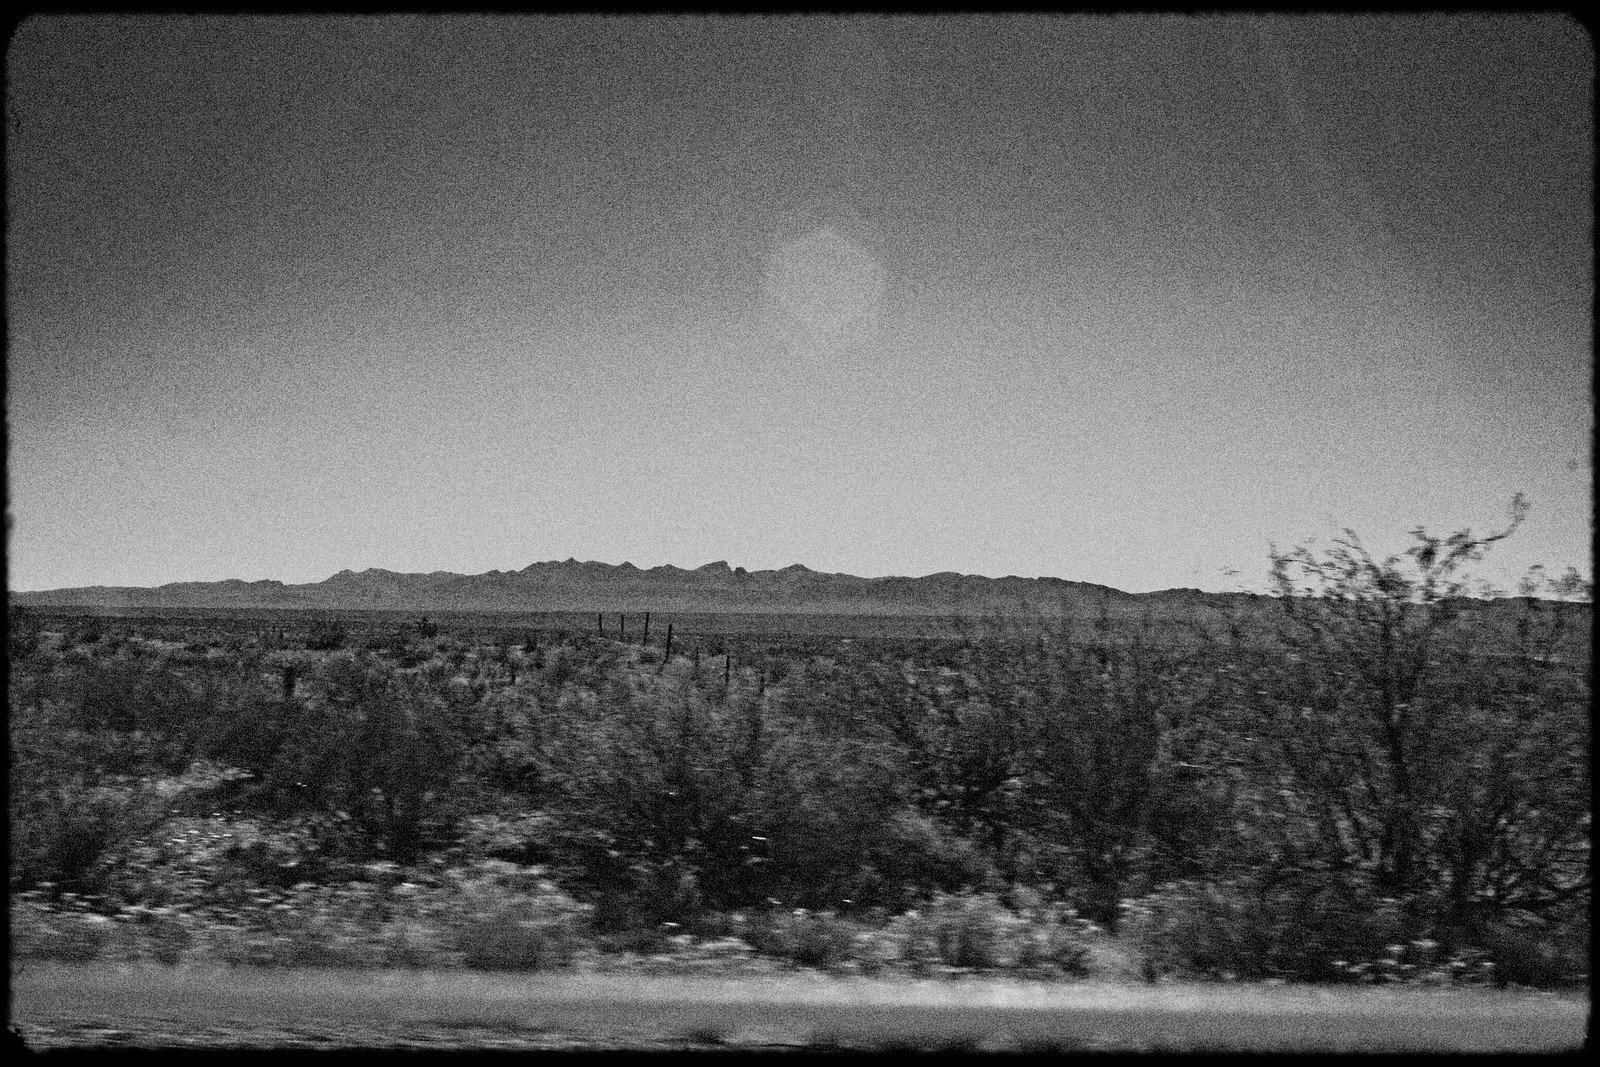 Facing Mexico, Interstate 10, West Texas, 2006